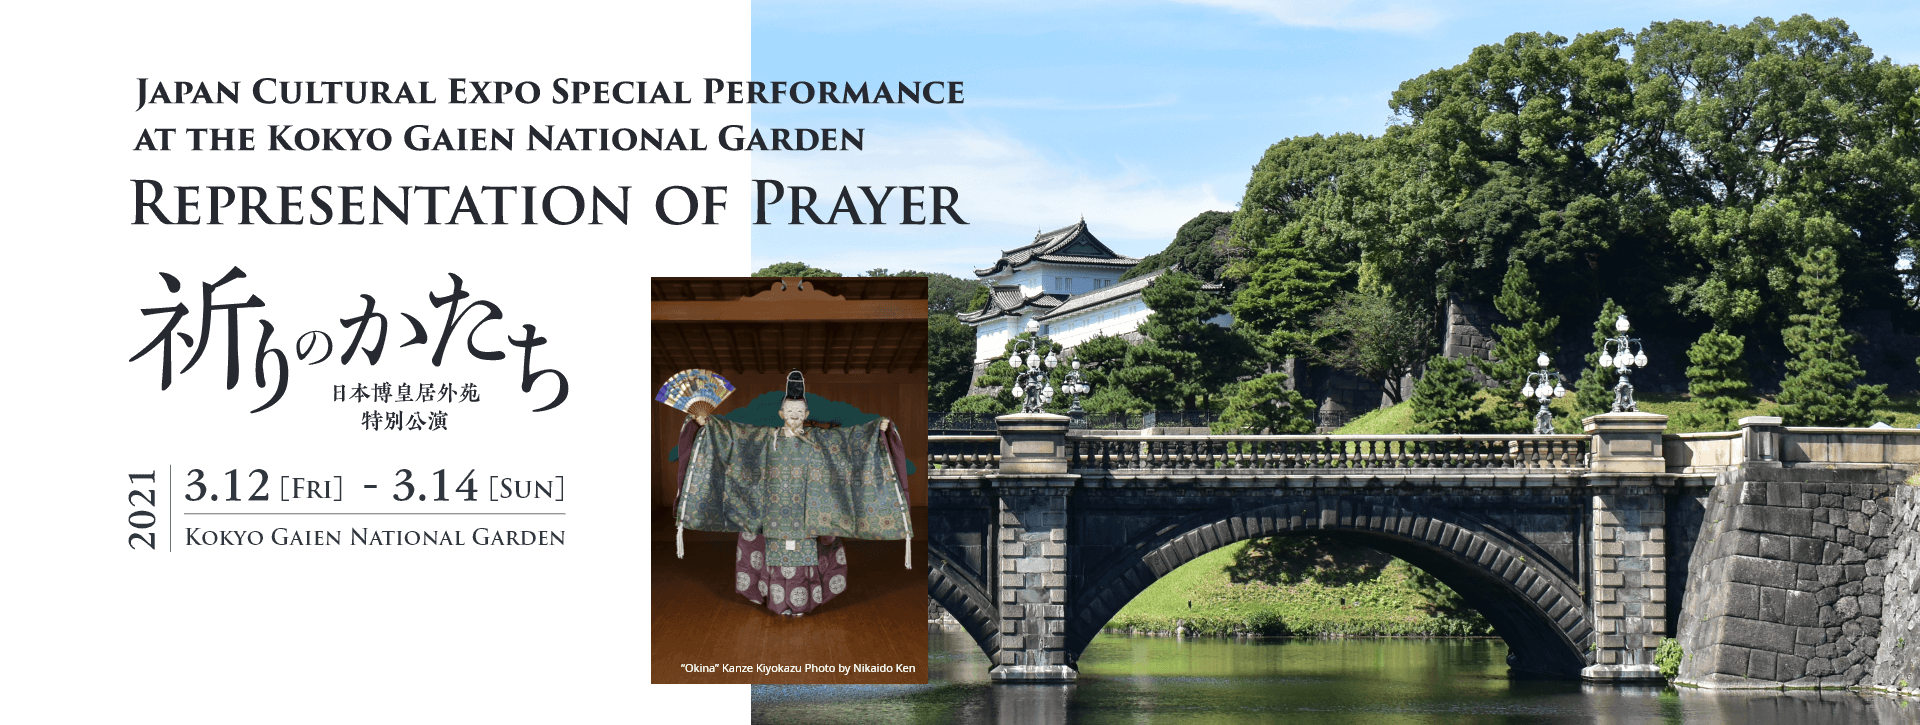 JAPAN CULTURAL EXPO SPECIAL PERFORMANCE AT THE KOKYO GAIEN NATIONAL GARDEN REPRESENTATION OF PRAYER